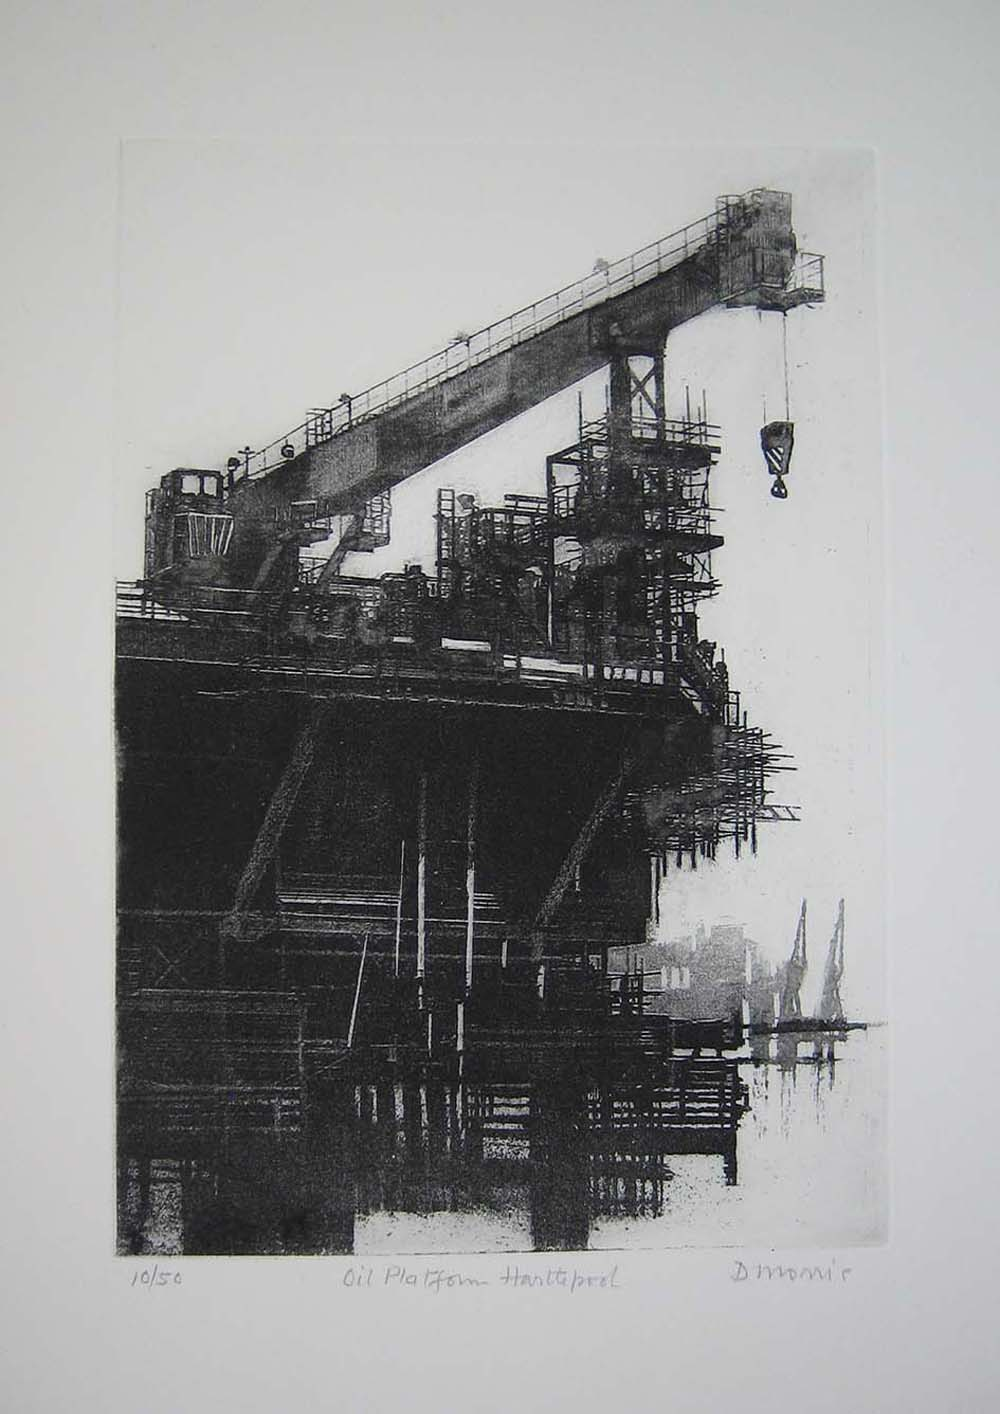 an balck and white etching showing an oil rig